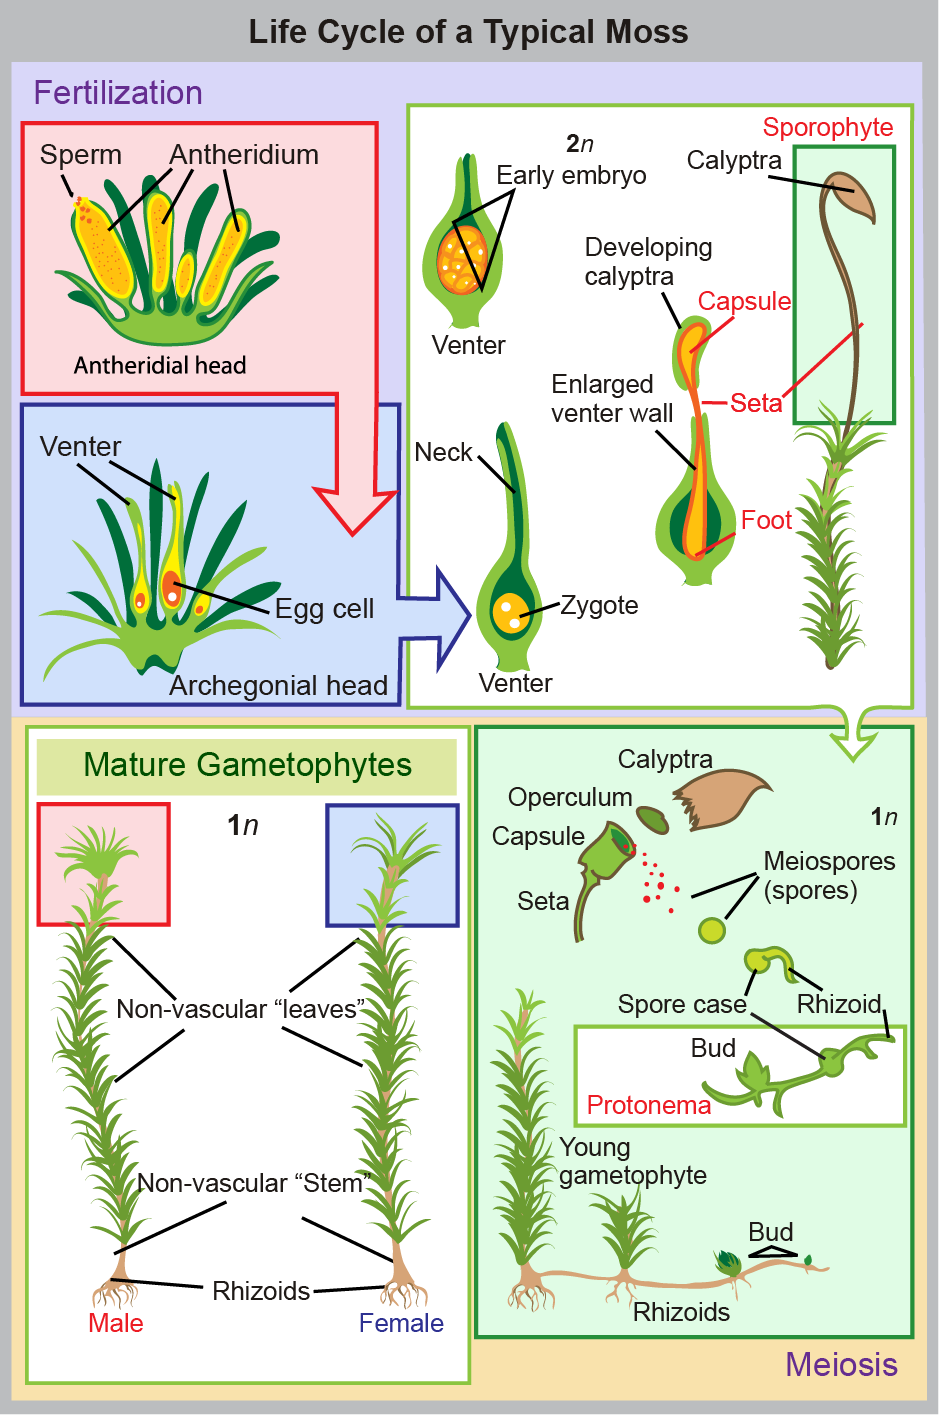 In mosses, the mature haploid (1n) gametophyte is a slender, nonvascular stem with fuzzy, non-vascular leaves. Root-like rhizoids grow from the bottom. Male antheridia and female archegonia grow at the tip of the stem. Sperm fertilize the eggs, producing a diploid (2n) zygote inside a vase-like structure called a venter inside the archegonial head. The embryo grows into a sporophyte that projects like a flower from the vase. The sporophyte undergoes meiosis to produce haploid (1n) spores that grow to produce mature gametophytes, completing the cycle.